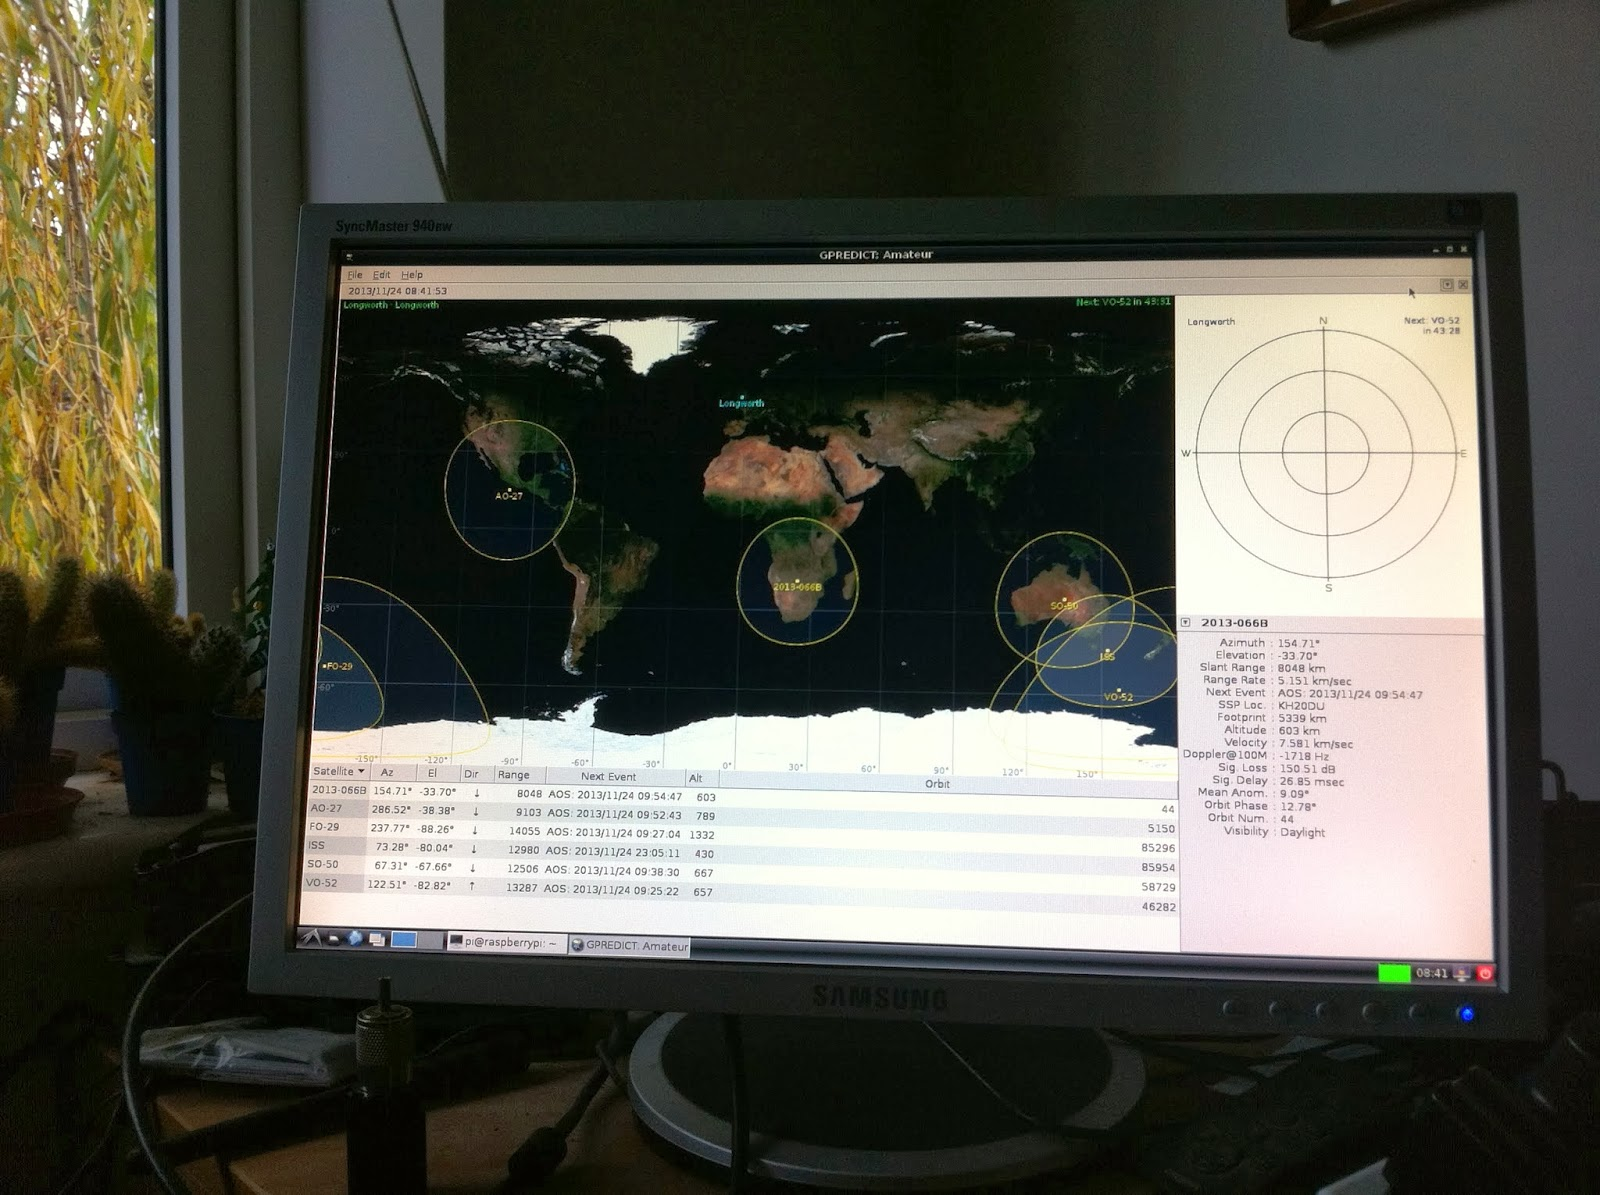 Using the Raspberry Pi and GPredict software to track Funcube-1 (or